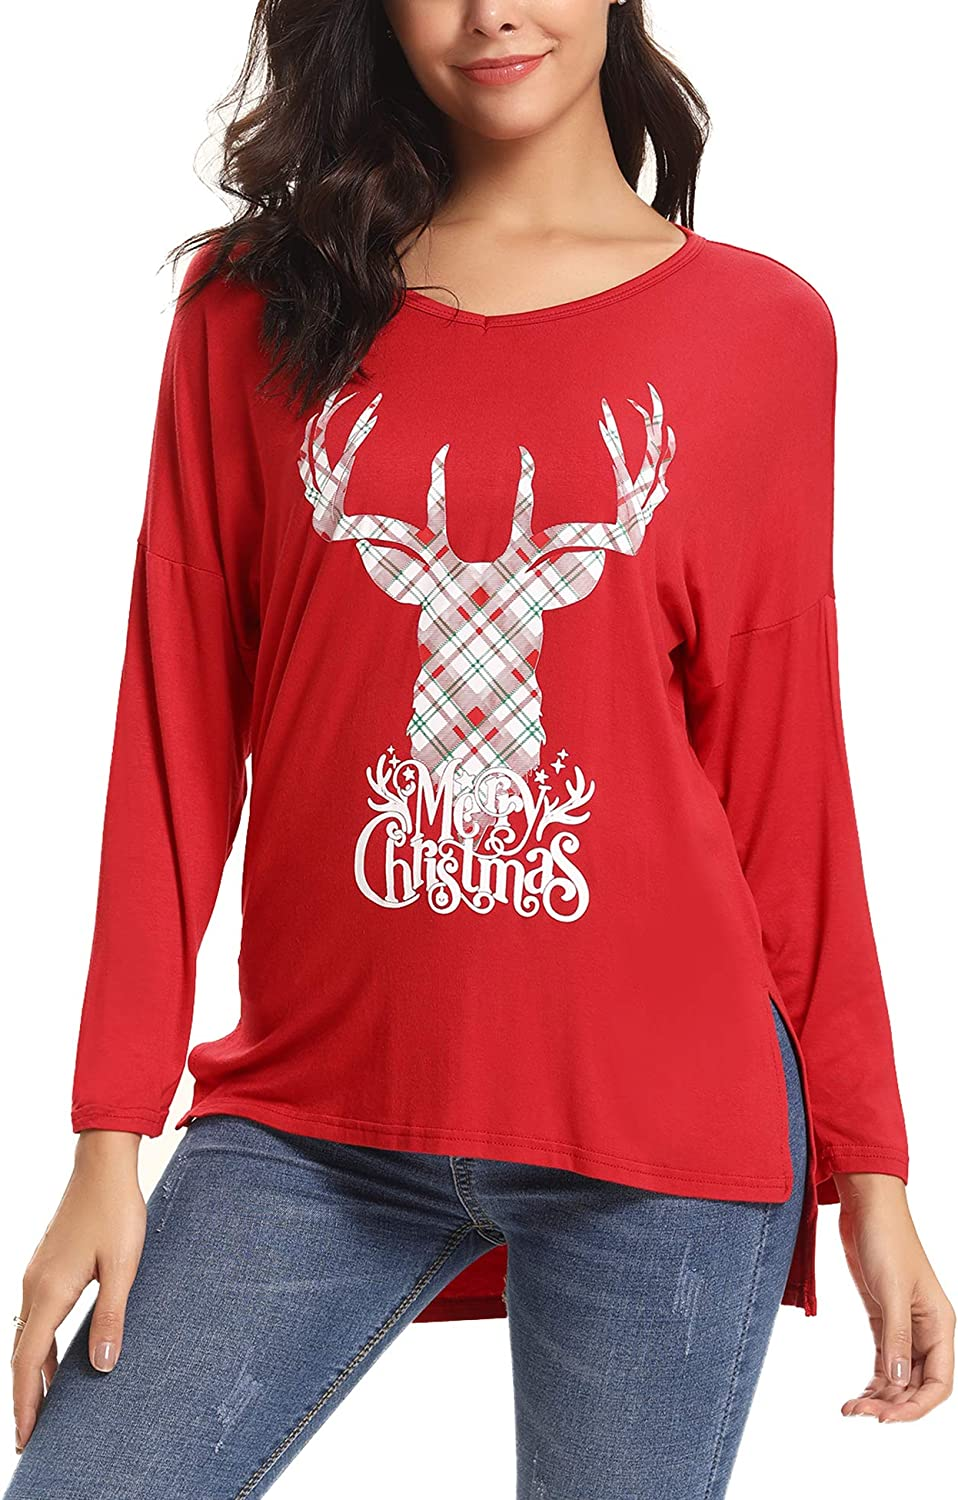 iClosam Womens Sexy Cross Front V-Neck Long Sleeve Christmas Letter Print T-Shirt Tunic Tops